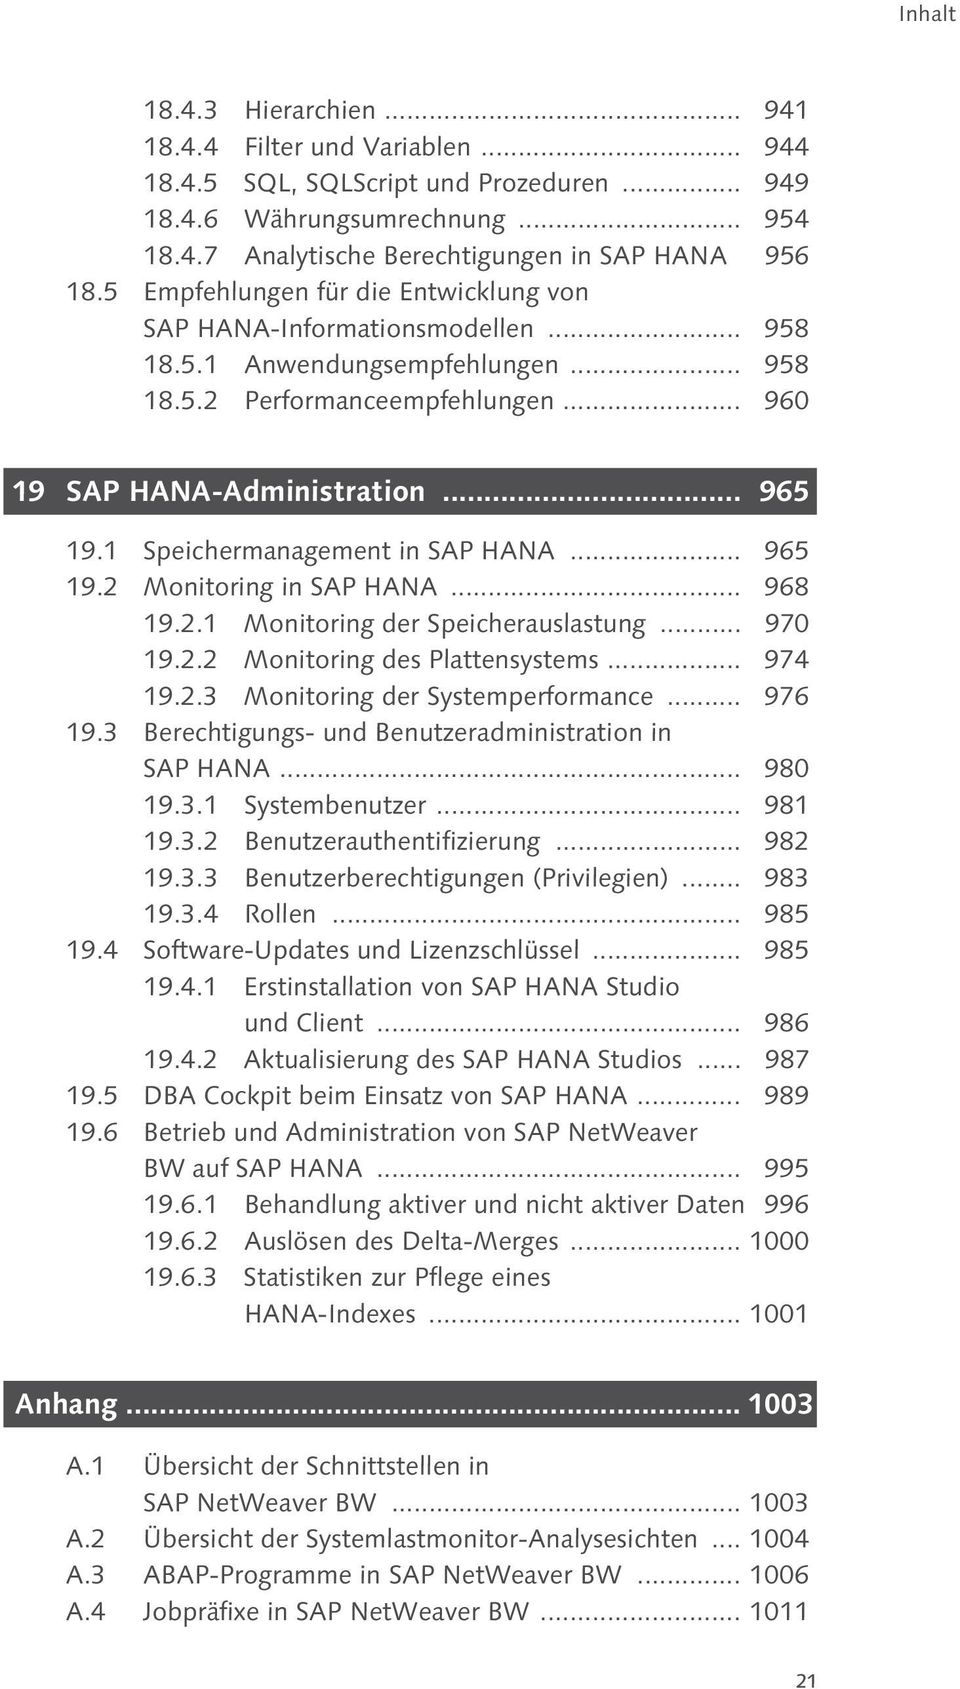 1 Speichermanagement in SAP HANA... 965 19.2 Monitoring in SAP HANA... 968 19.2.1 Monitoring der Speicherauslastung... 970 19.2.2 Monitoring des Plattensystems... 974 19.2.3 Monitoring der Systemperformance.